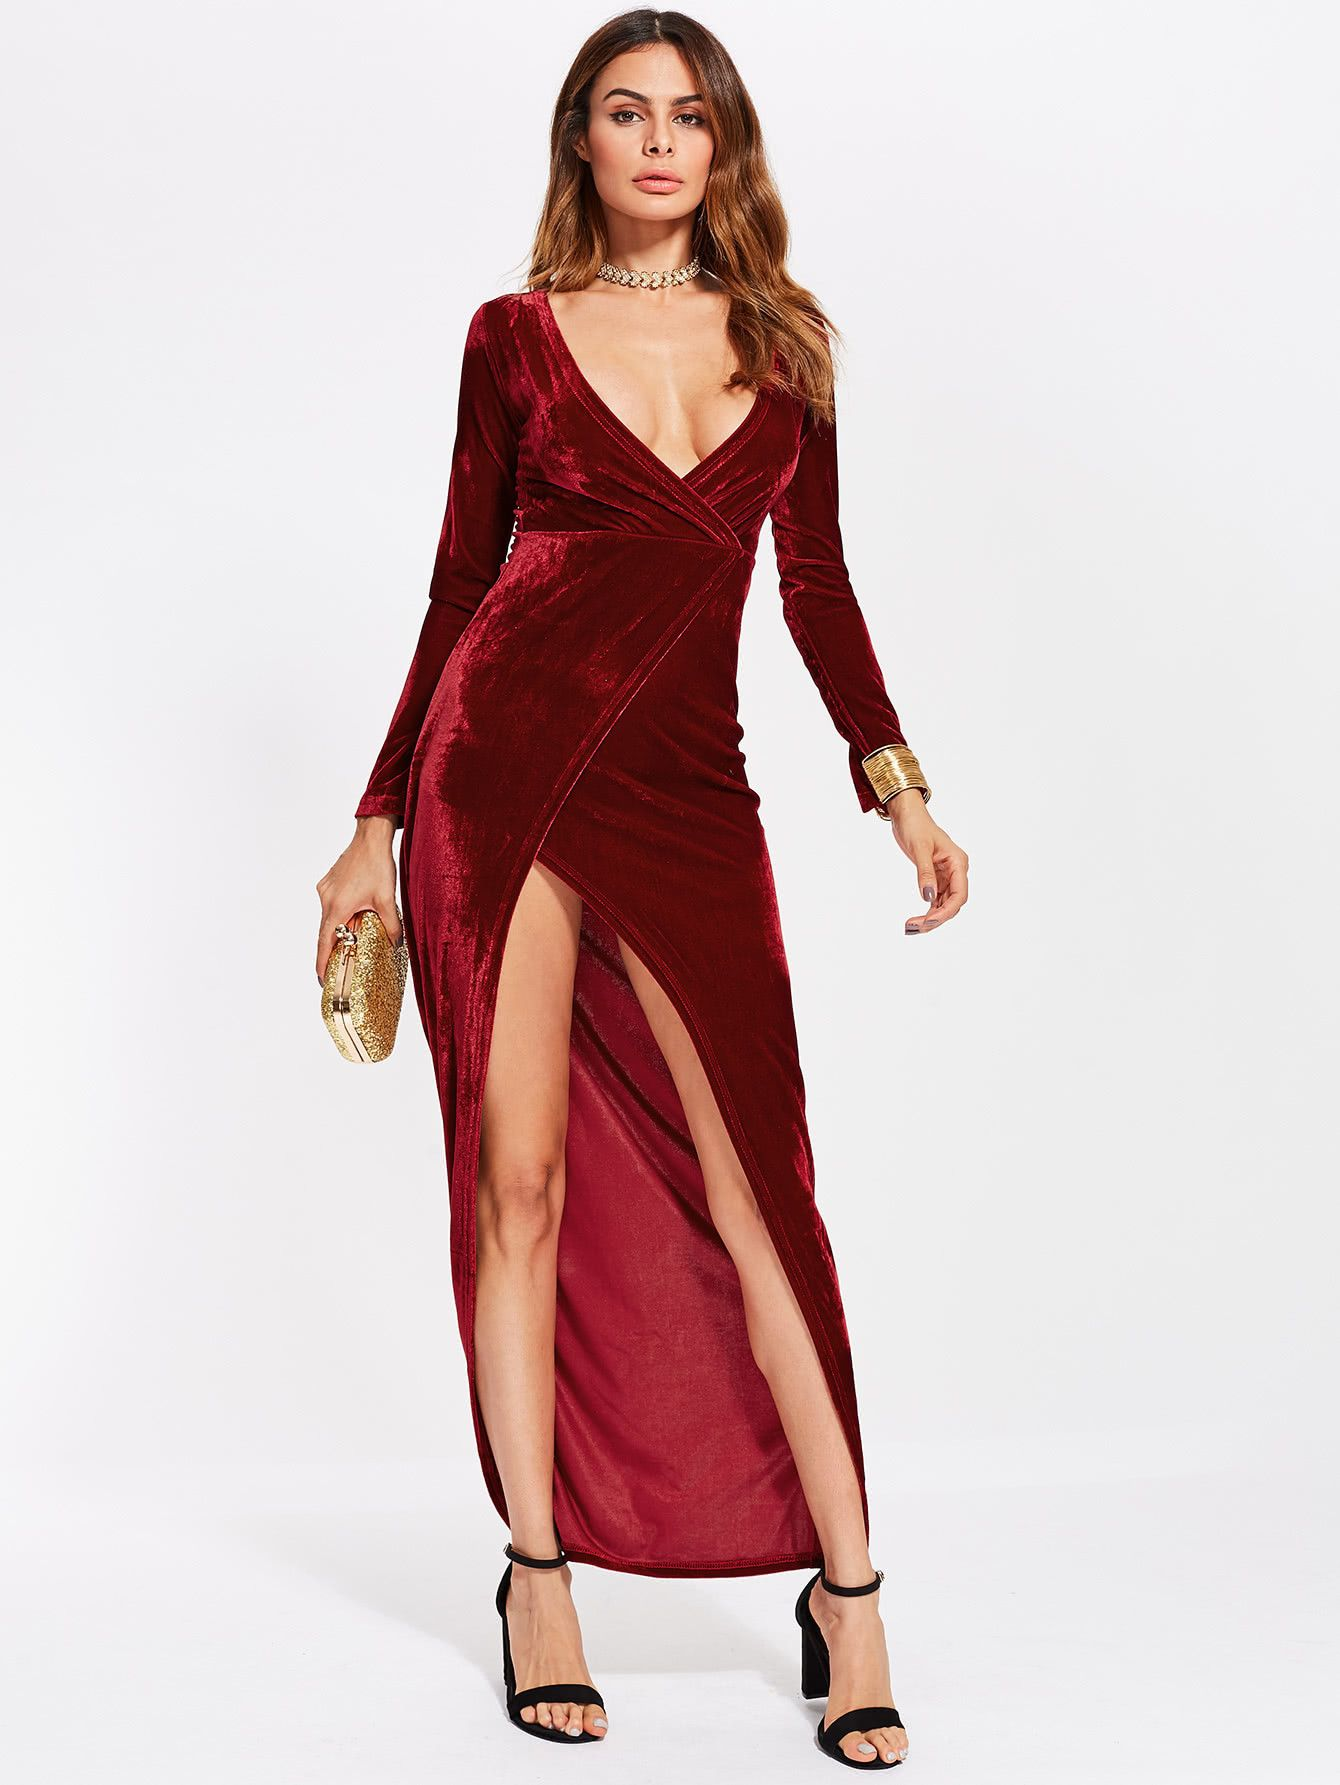 2db343e9a Deep V Neckline High Split Velvet Dress -SheIn(Sheinside) | It's ...